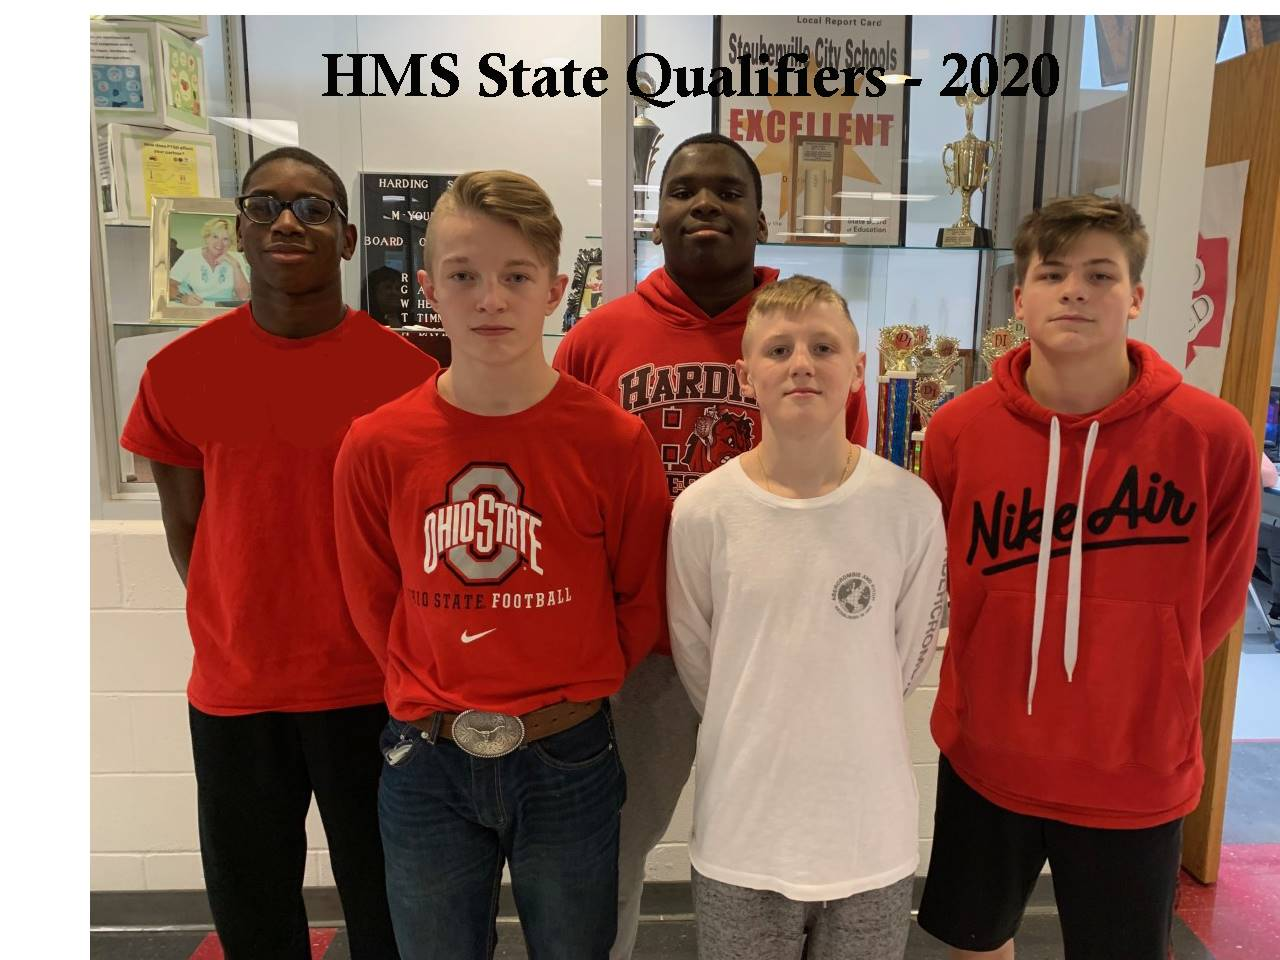 State Qualifiers 2020